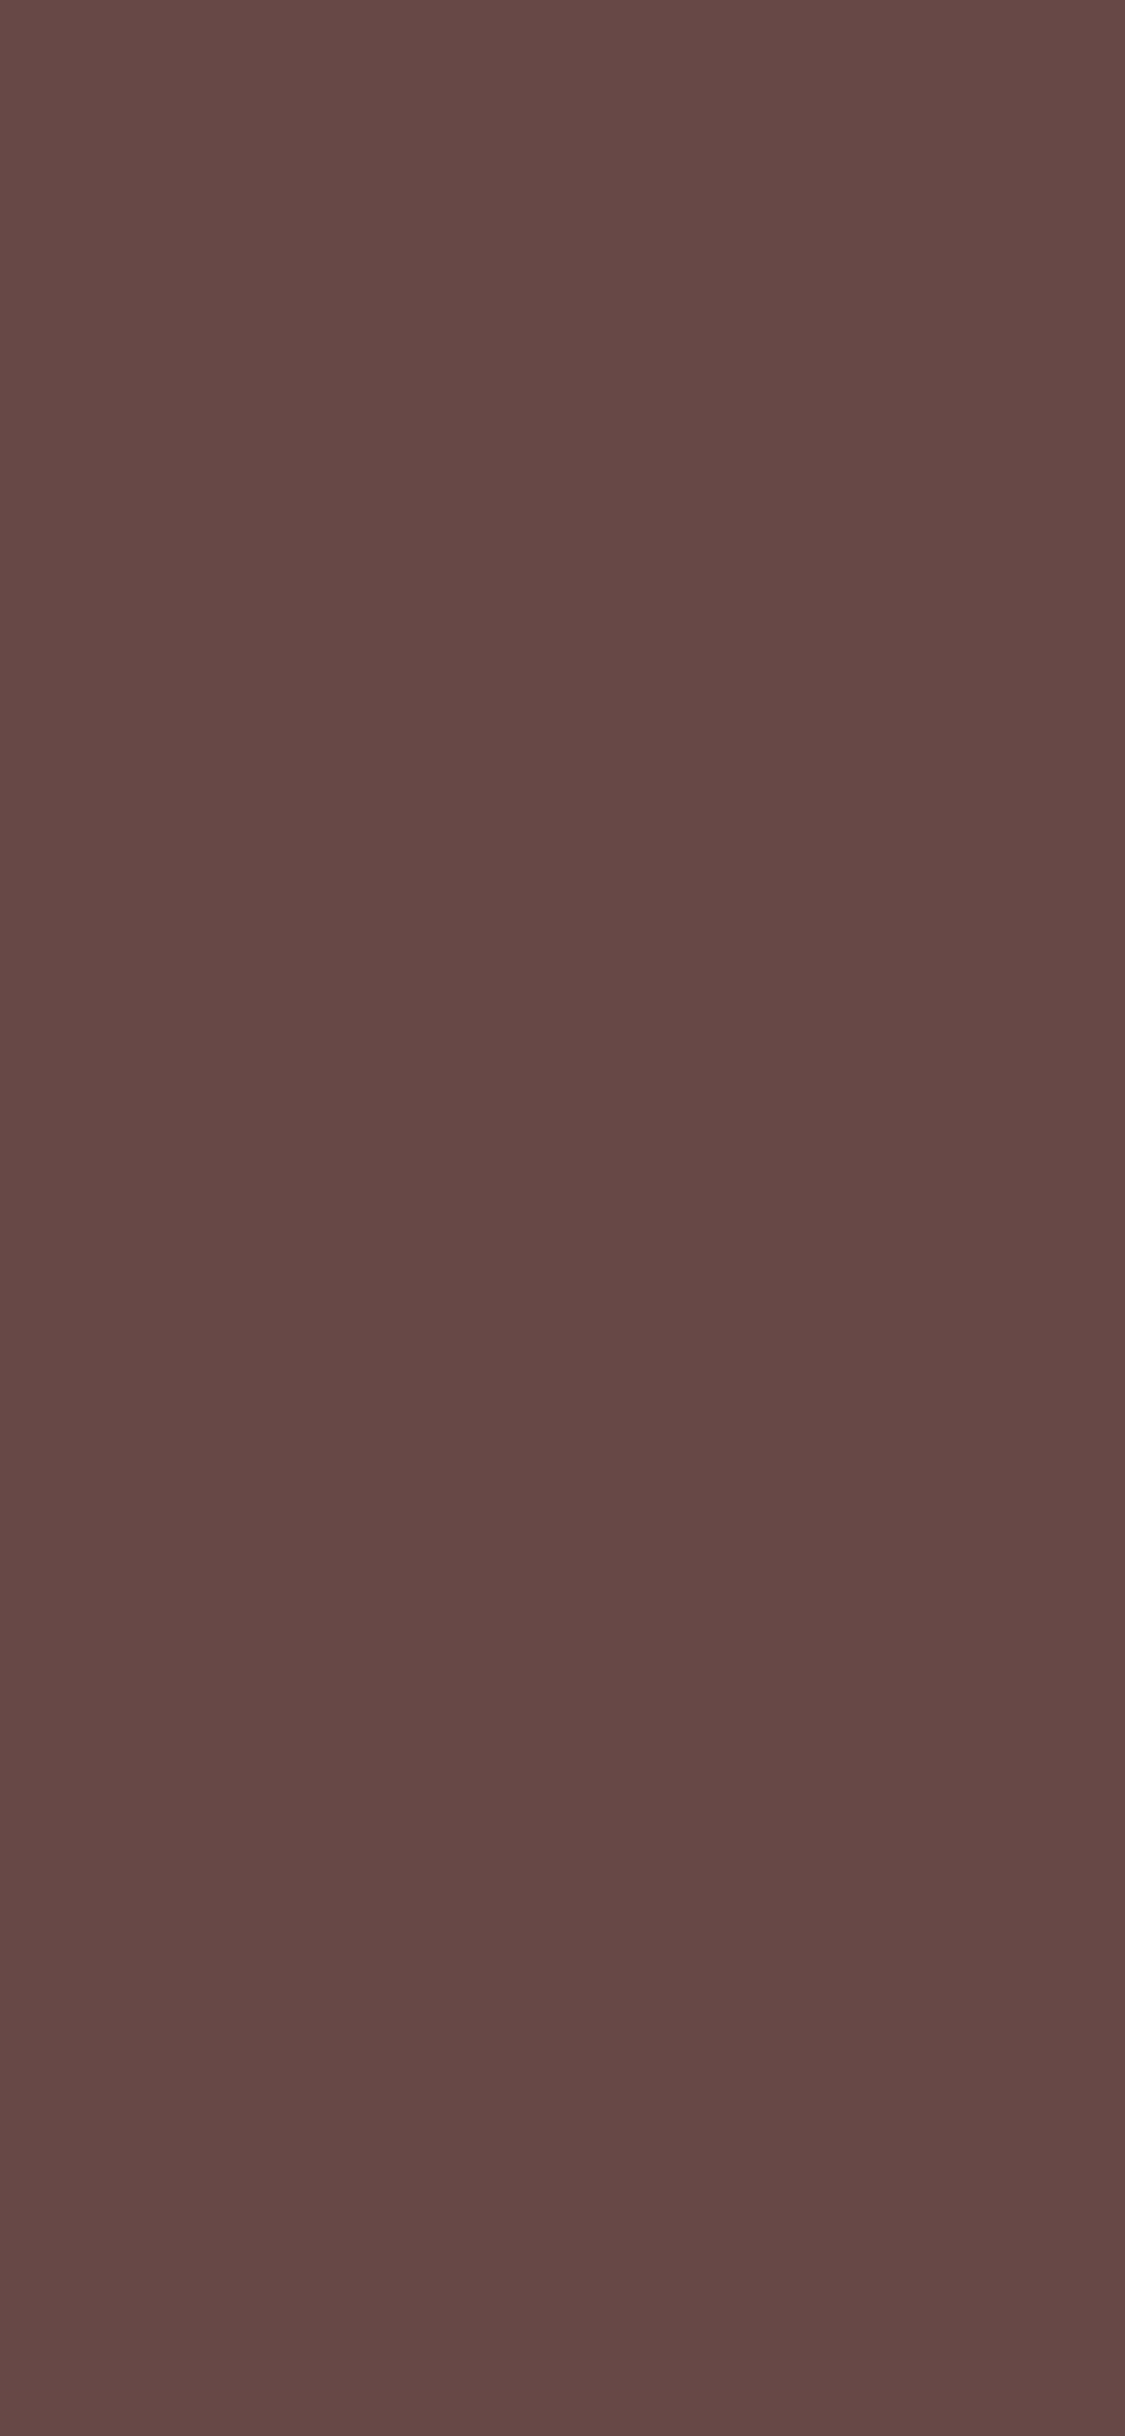 1125x2436 Rose Ebony Solid Color Background